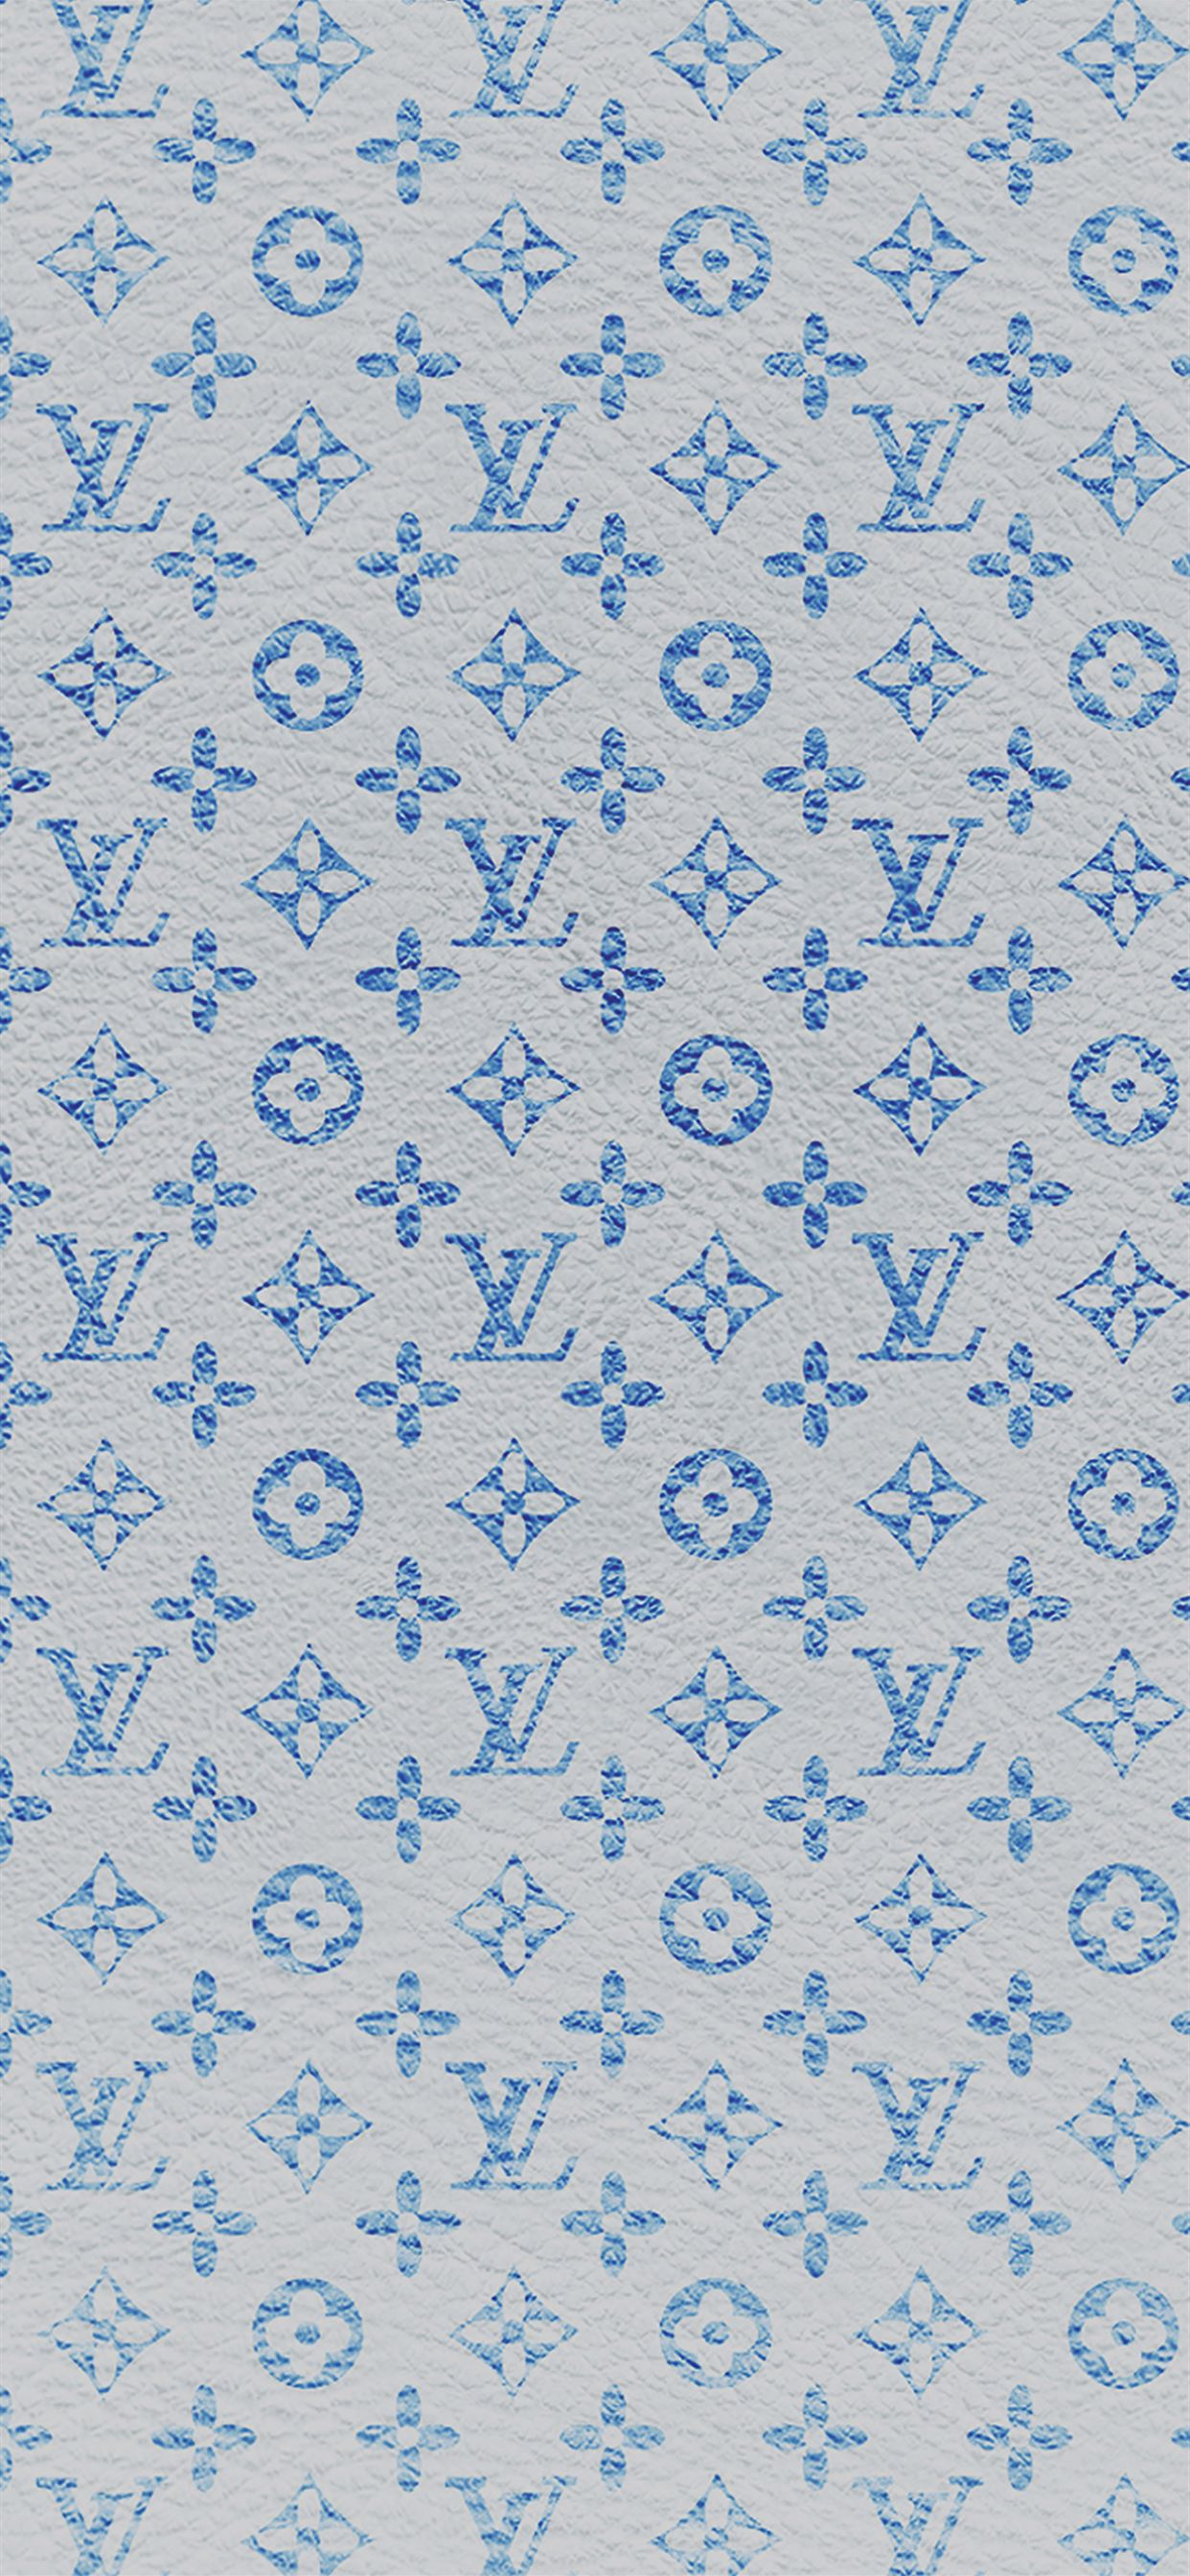 Louis Vuitton Blue Pattern Art Iphone 11 Wallpapers Free Download